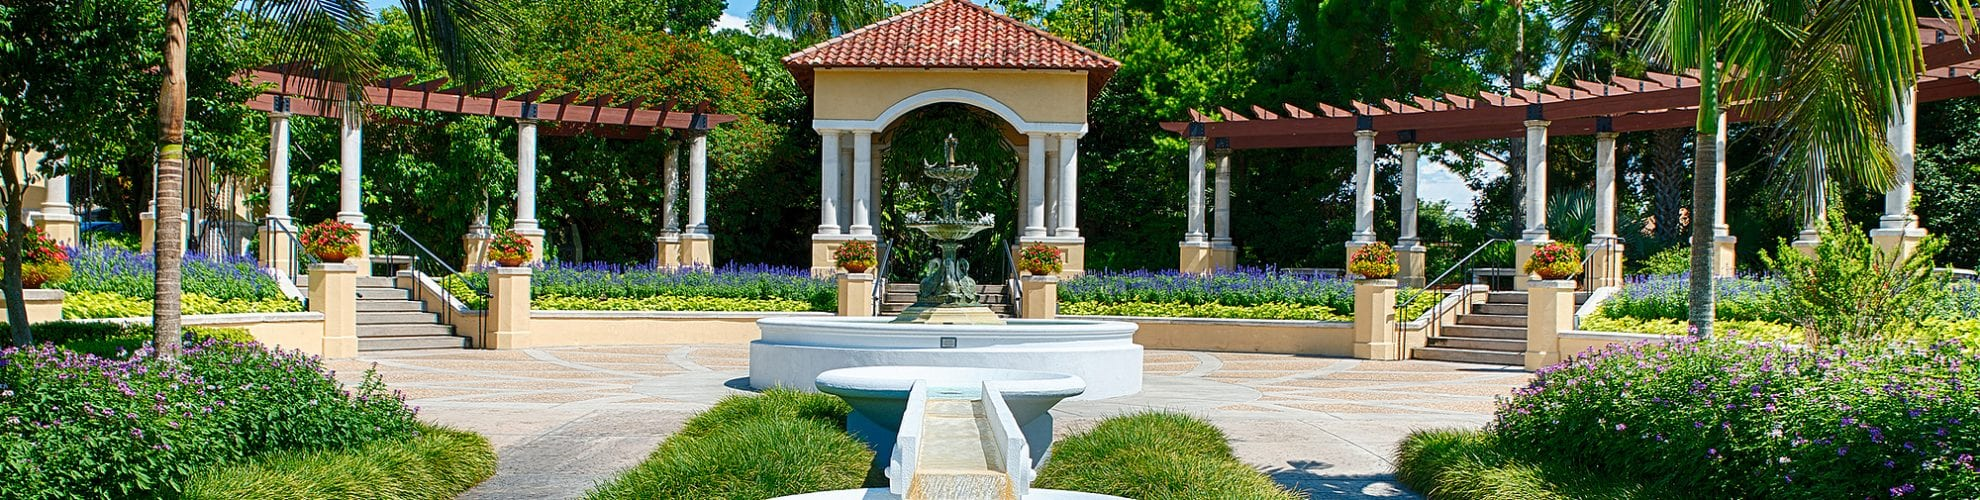 Hollis Gardens fountain in Lakeland, FL